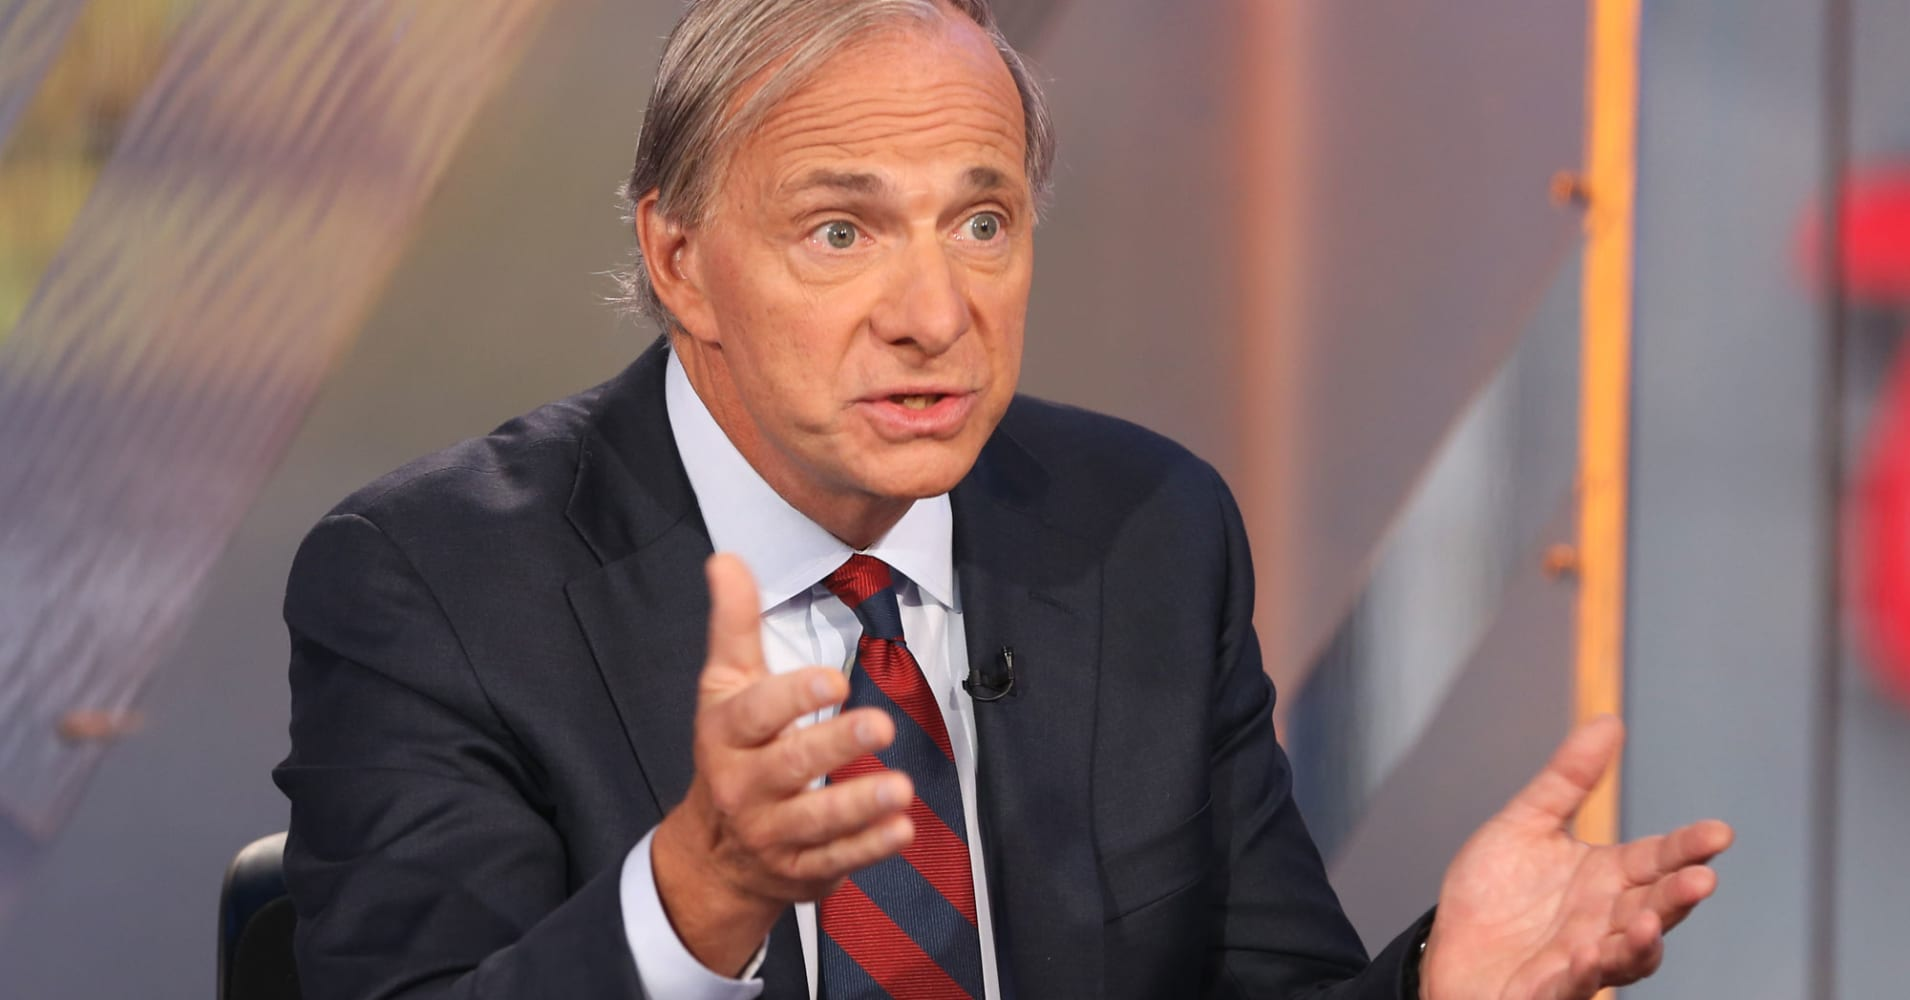 Billionaire investor Ray Dalio: Fed raised rates to a point where it's hurting asset prices